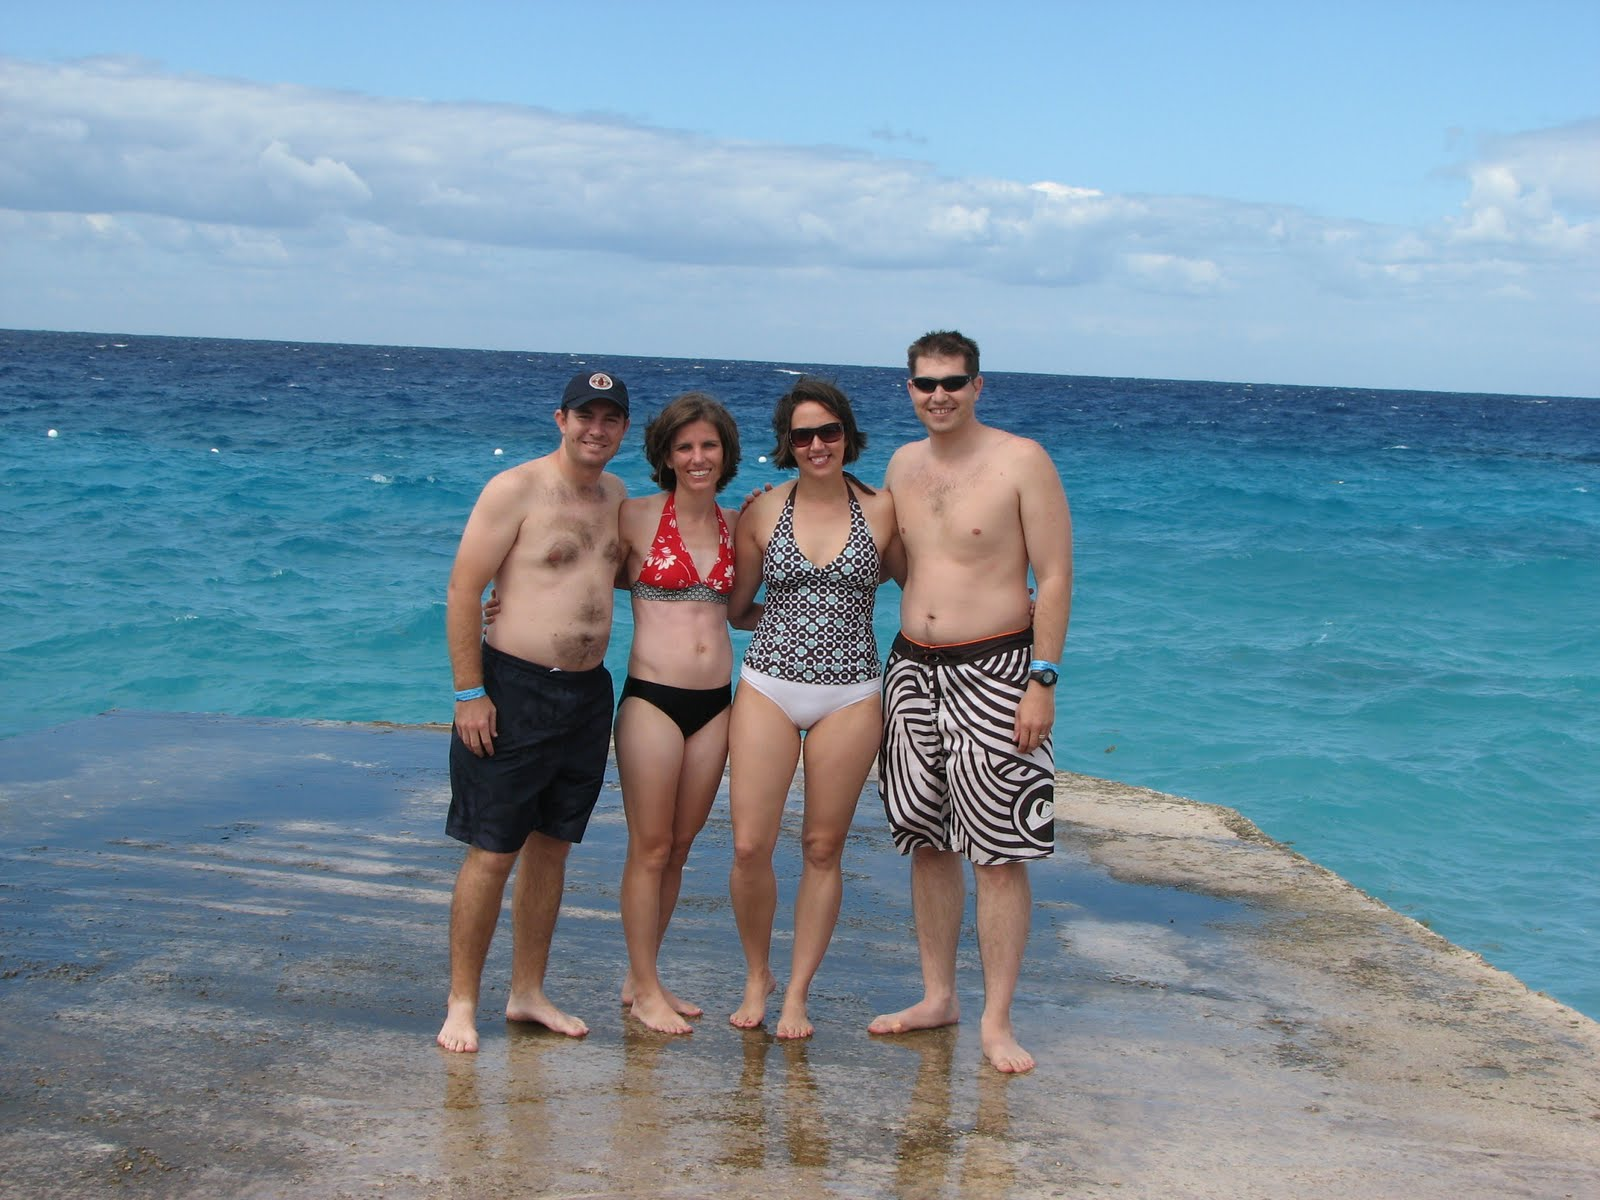 Nude beaches cozumel mexico